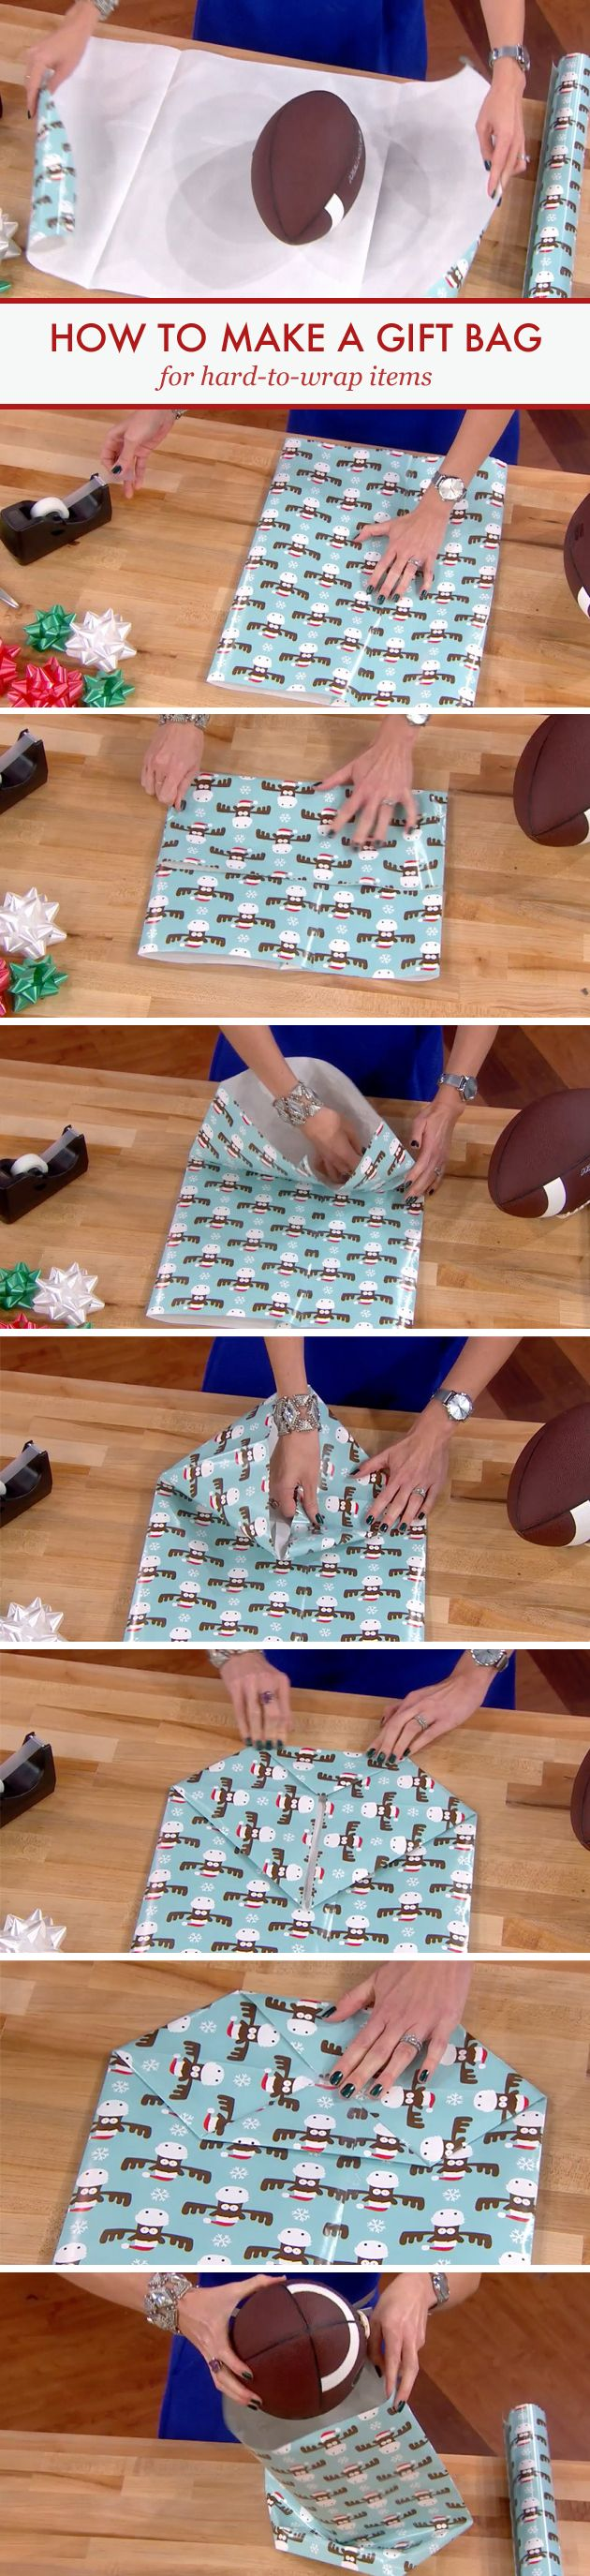 How to make DIY gift bags for hard-to-wrap items #Tip Used this over Christmas!!! Love it!!! --evf